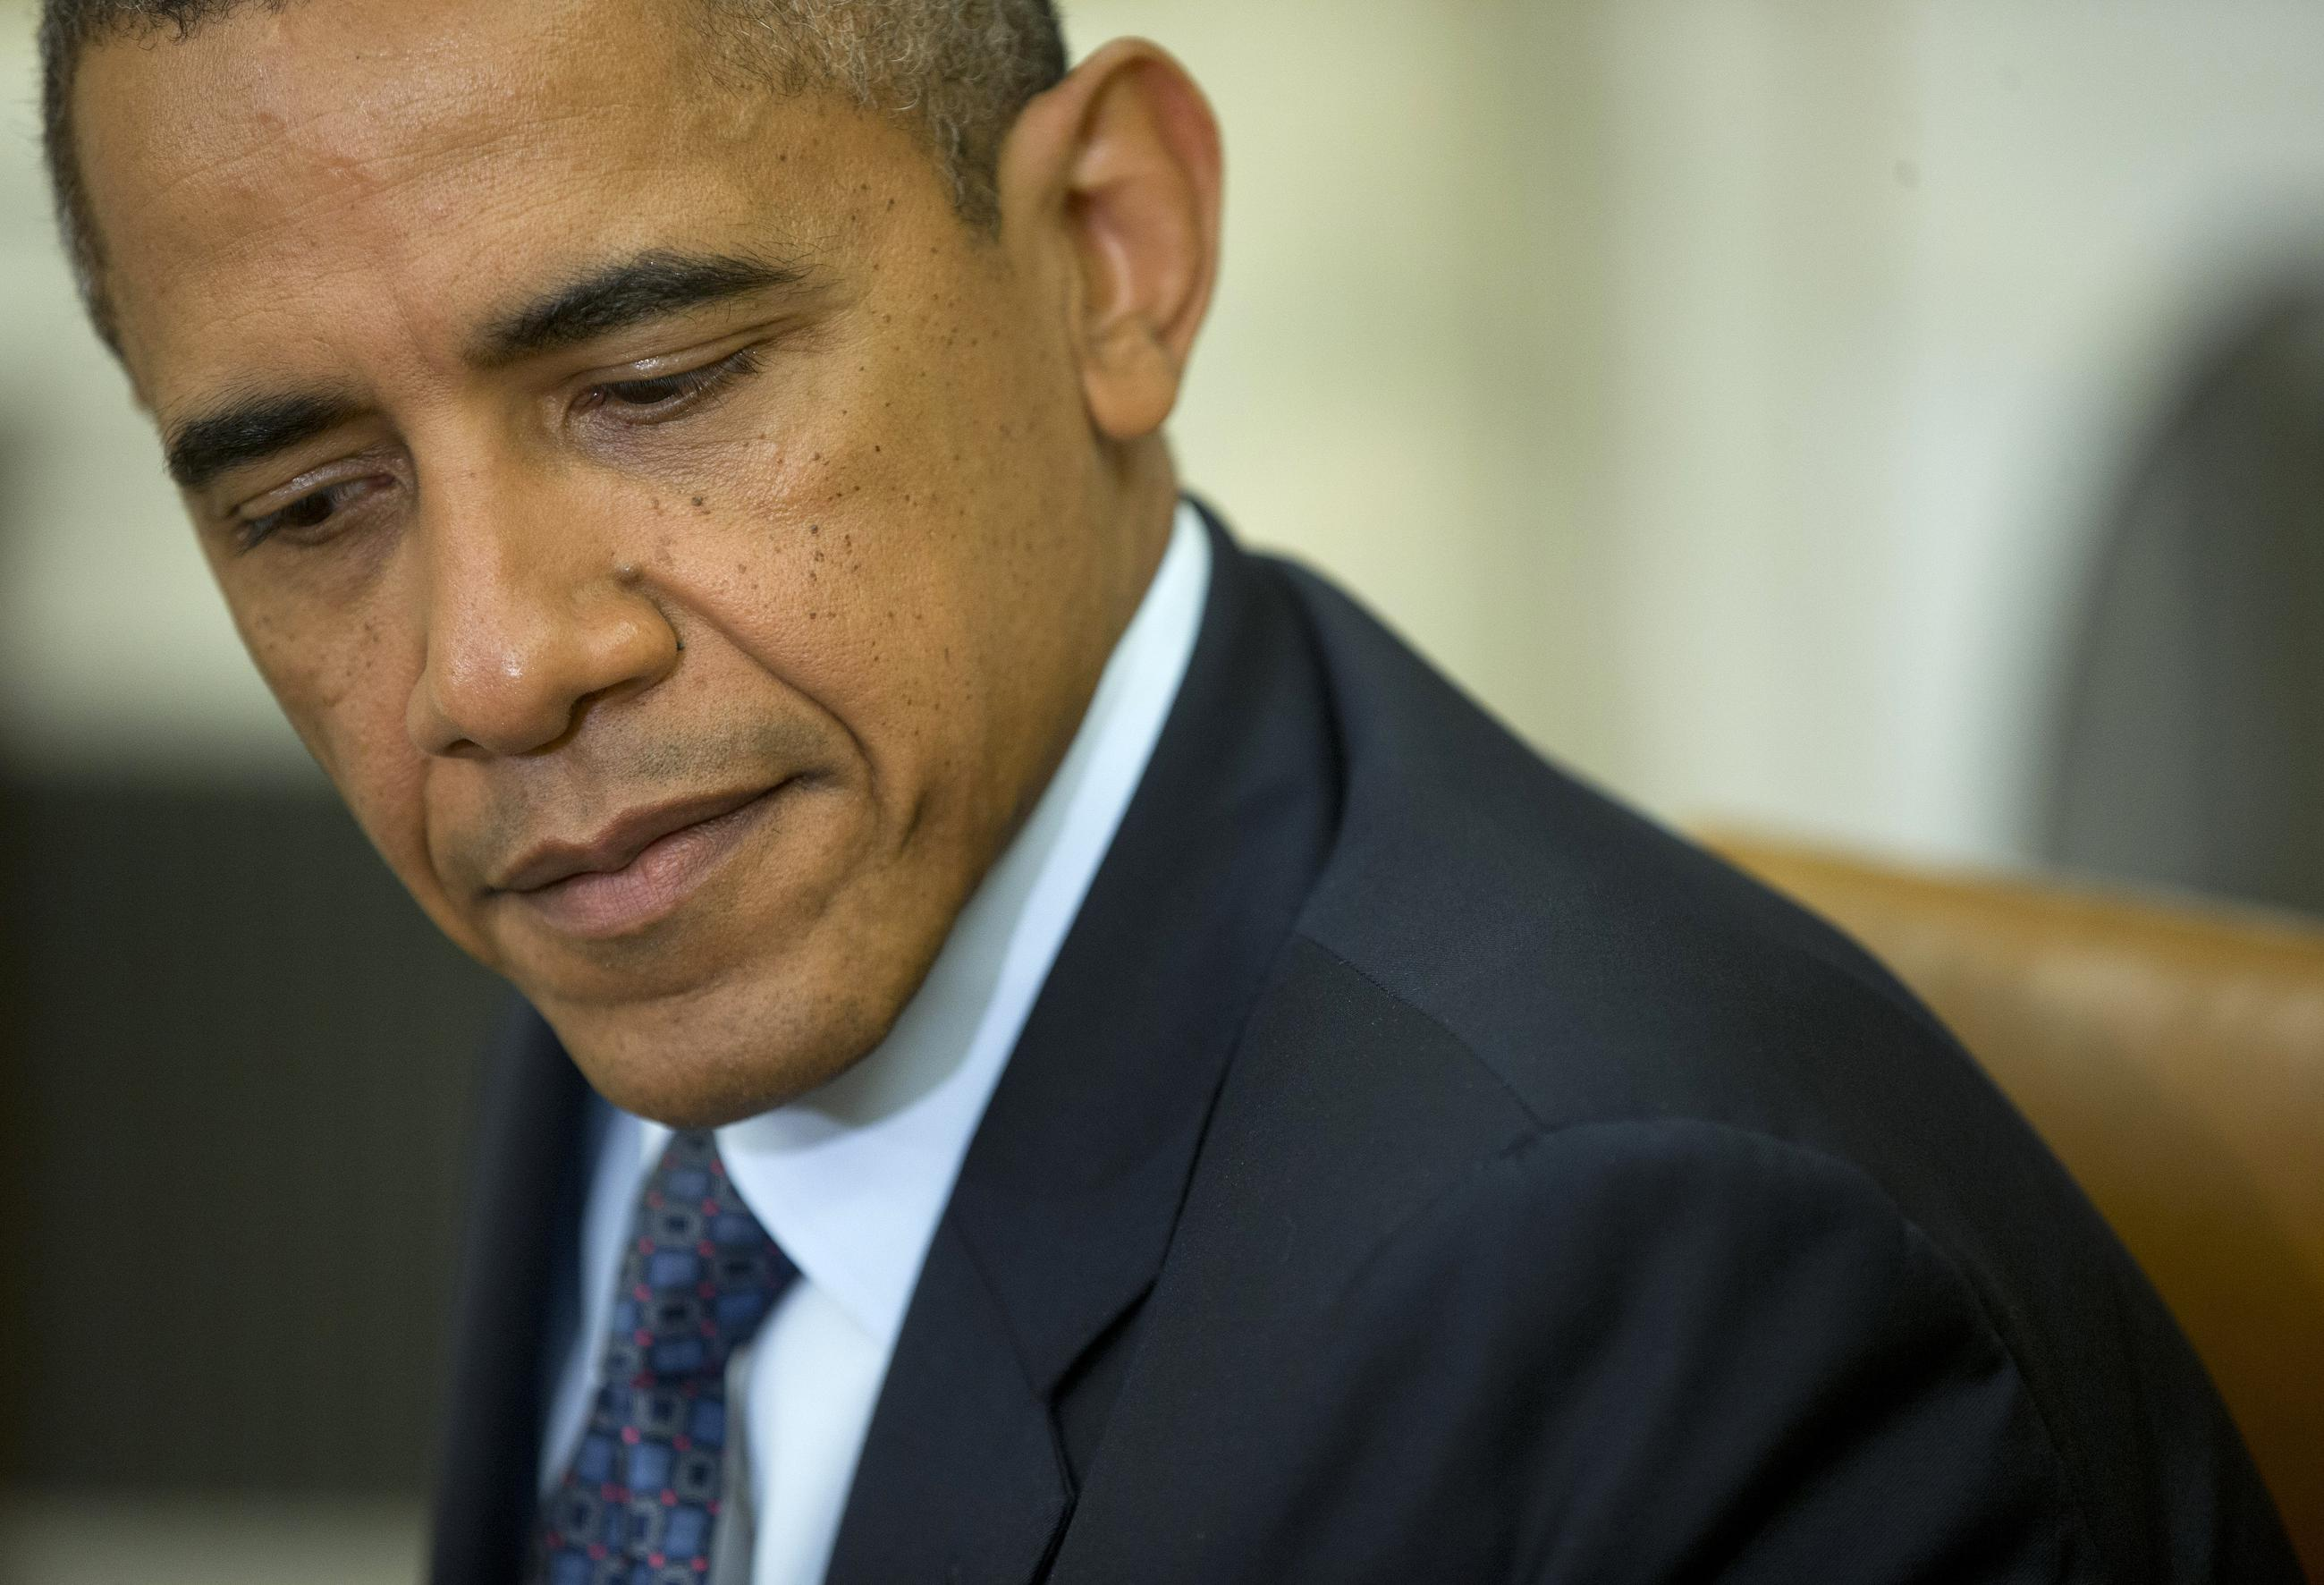 Obama on the Economy 5 Years Later: 'We're Not Near Where We Need to Be'